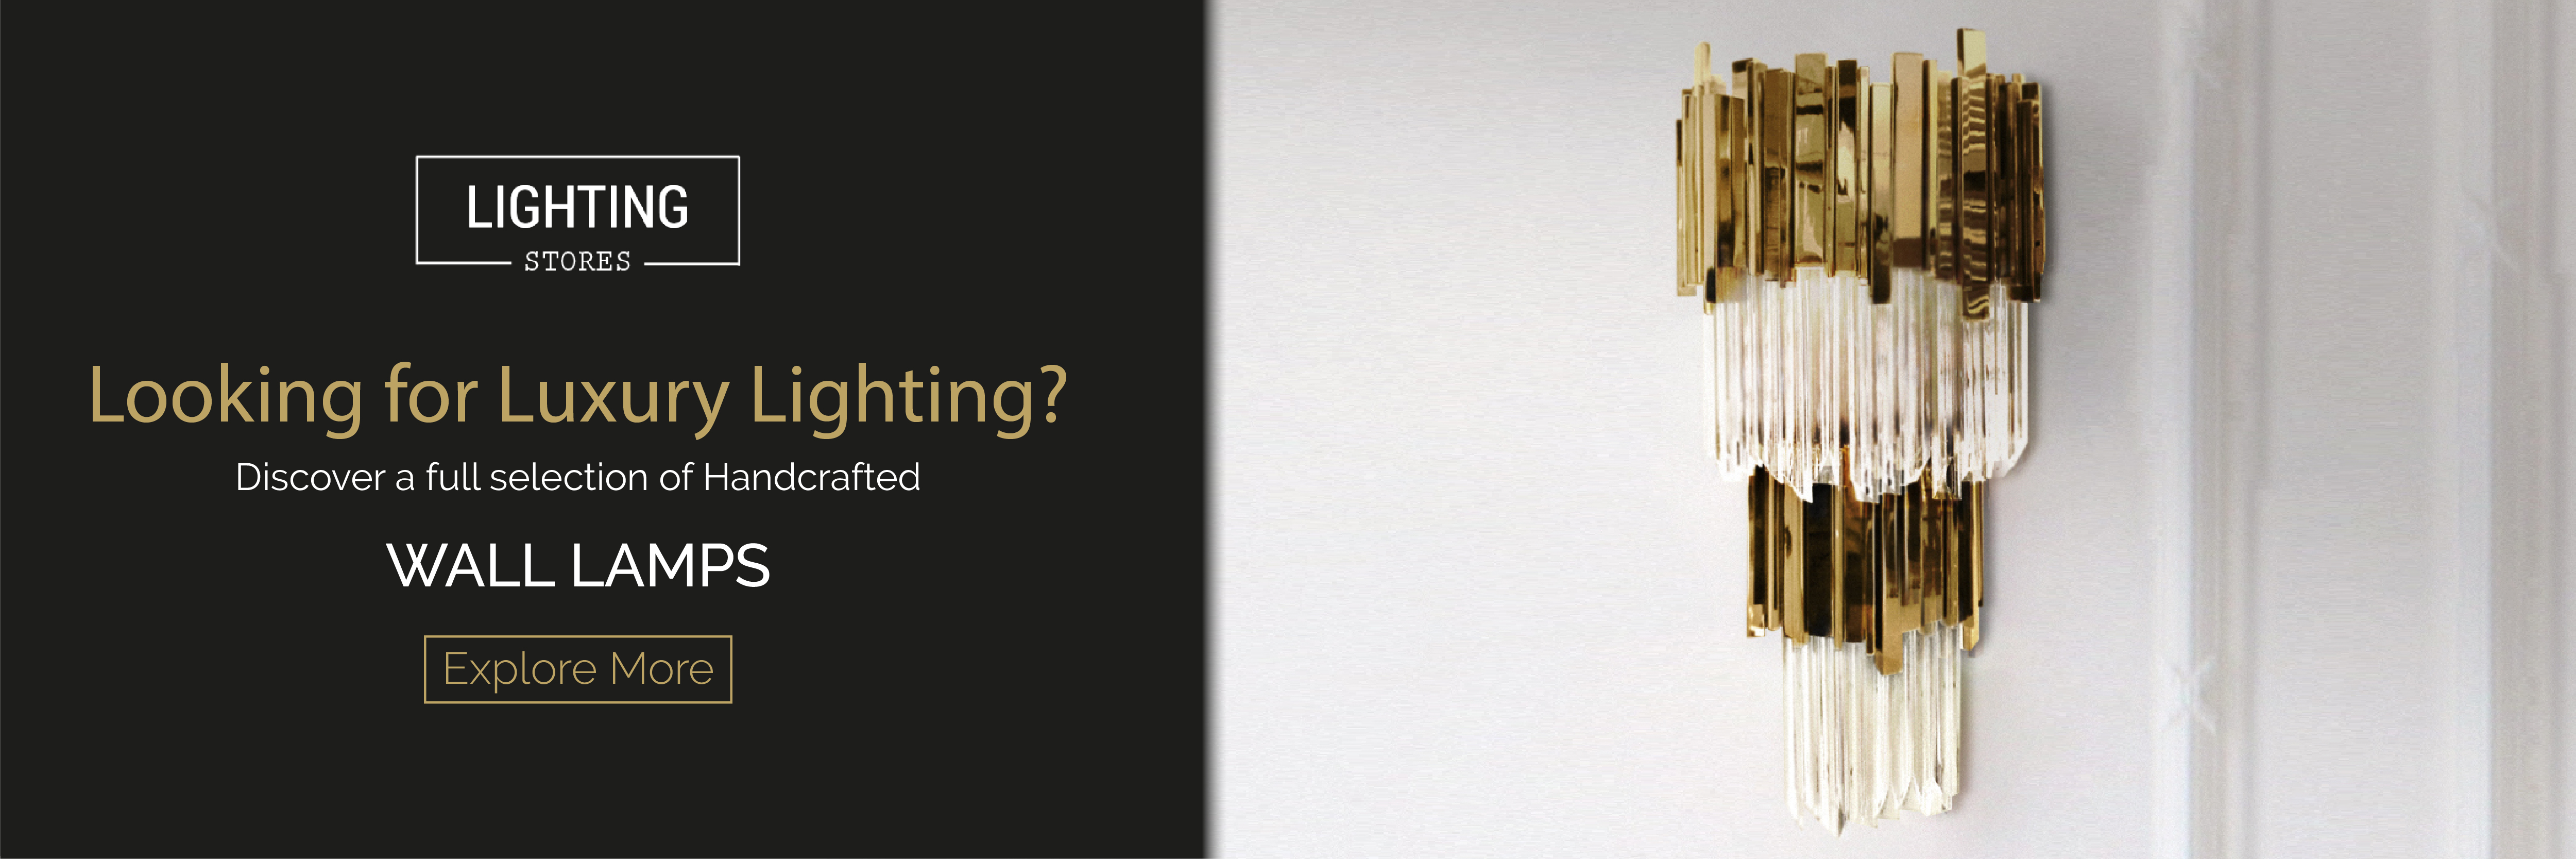 Lighting Stores Wall Lamps